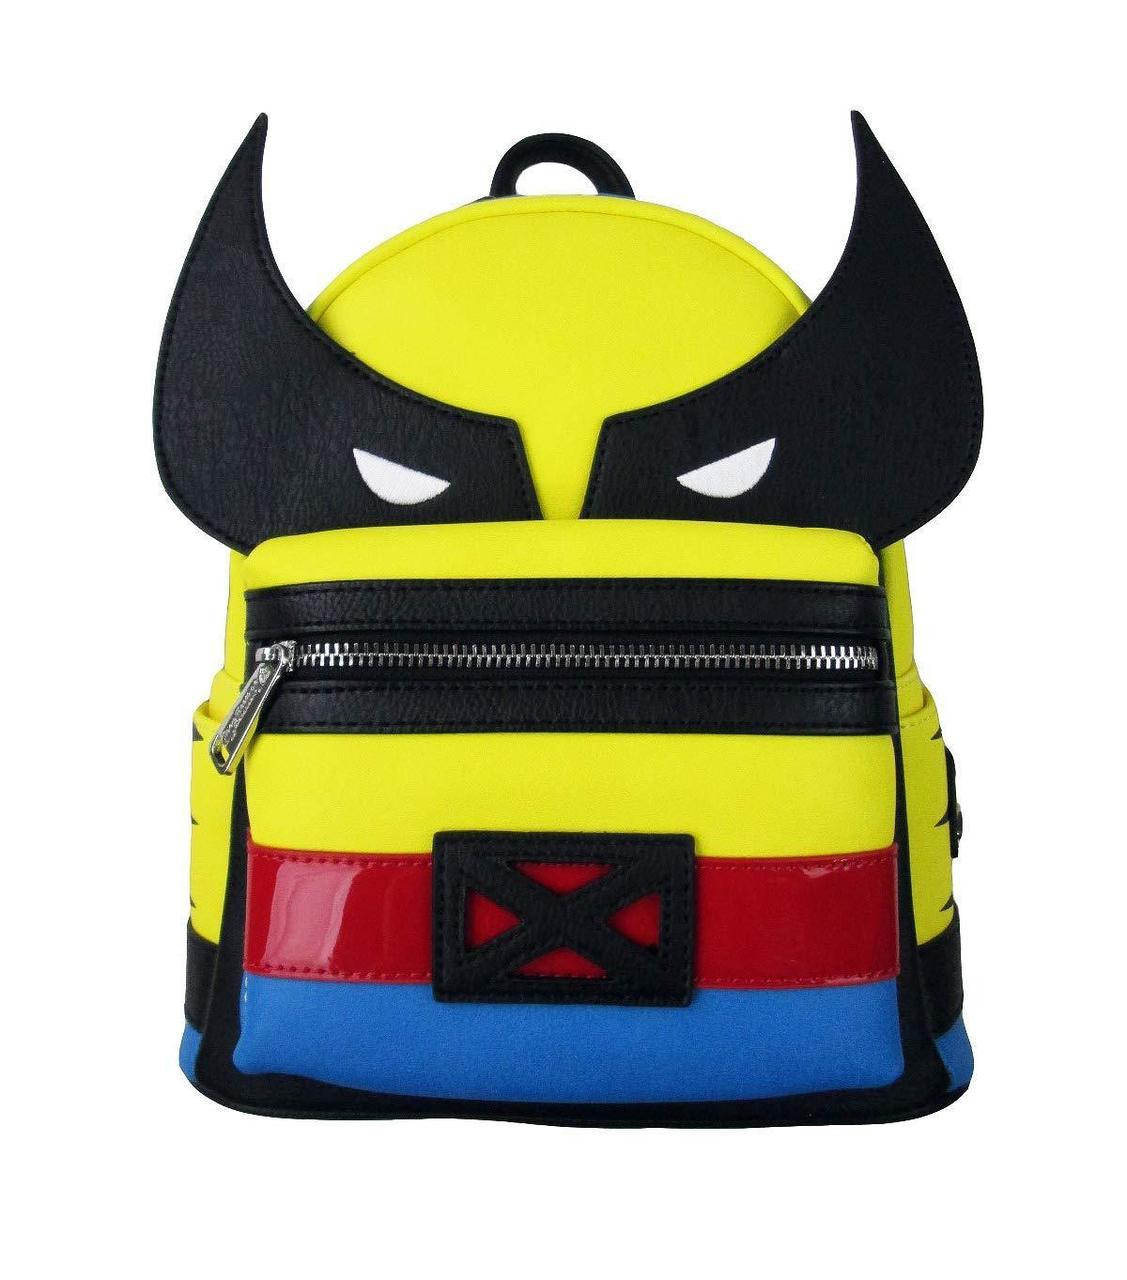 191038f69c24 Loungefly Marvel Comics Wolverine X-Men Mini Faux Leather Bag Backpack  MVBK0051 - Fearless Apparel